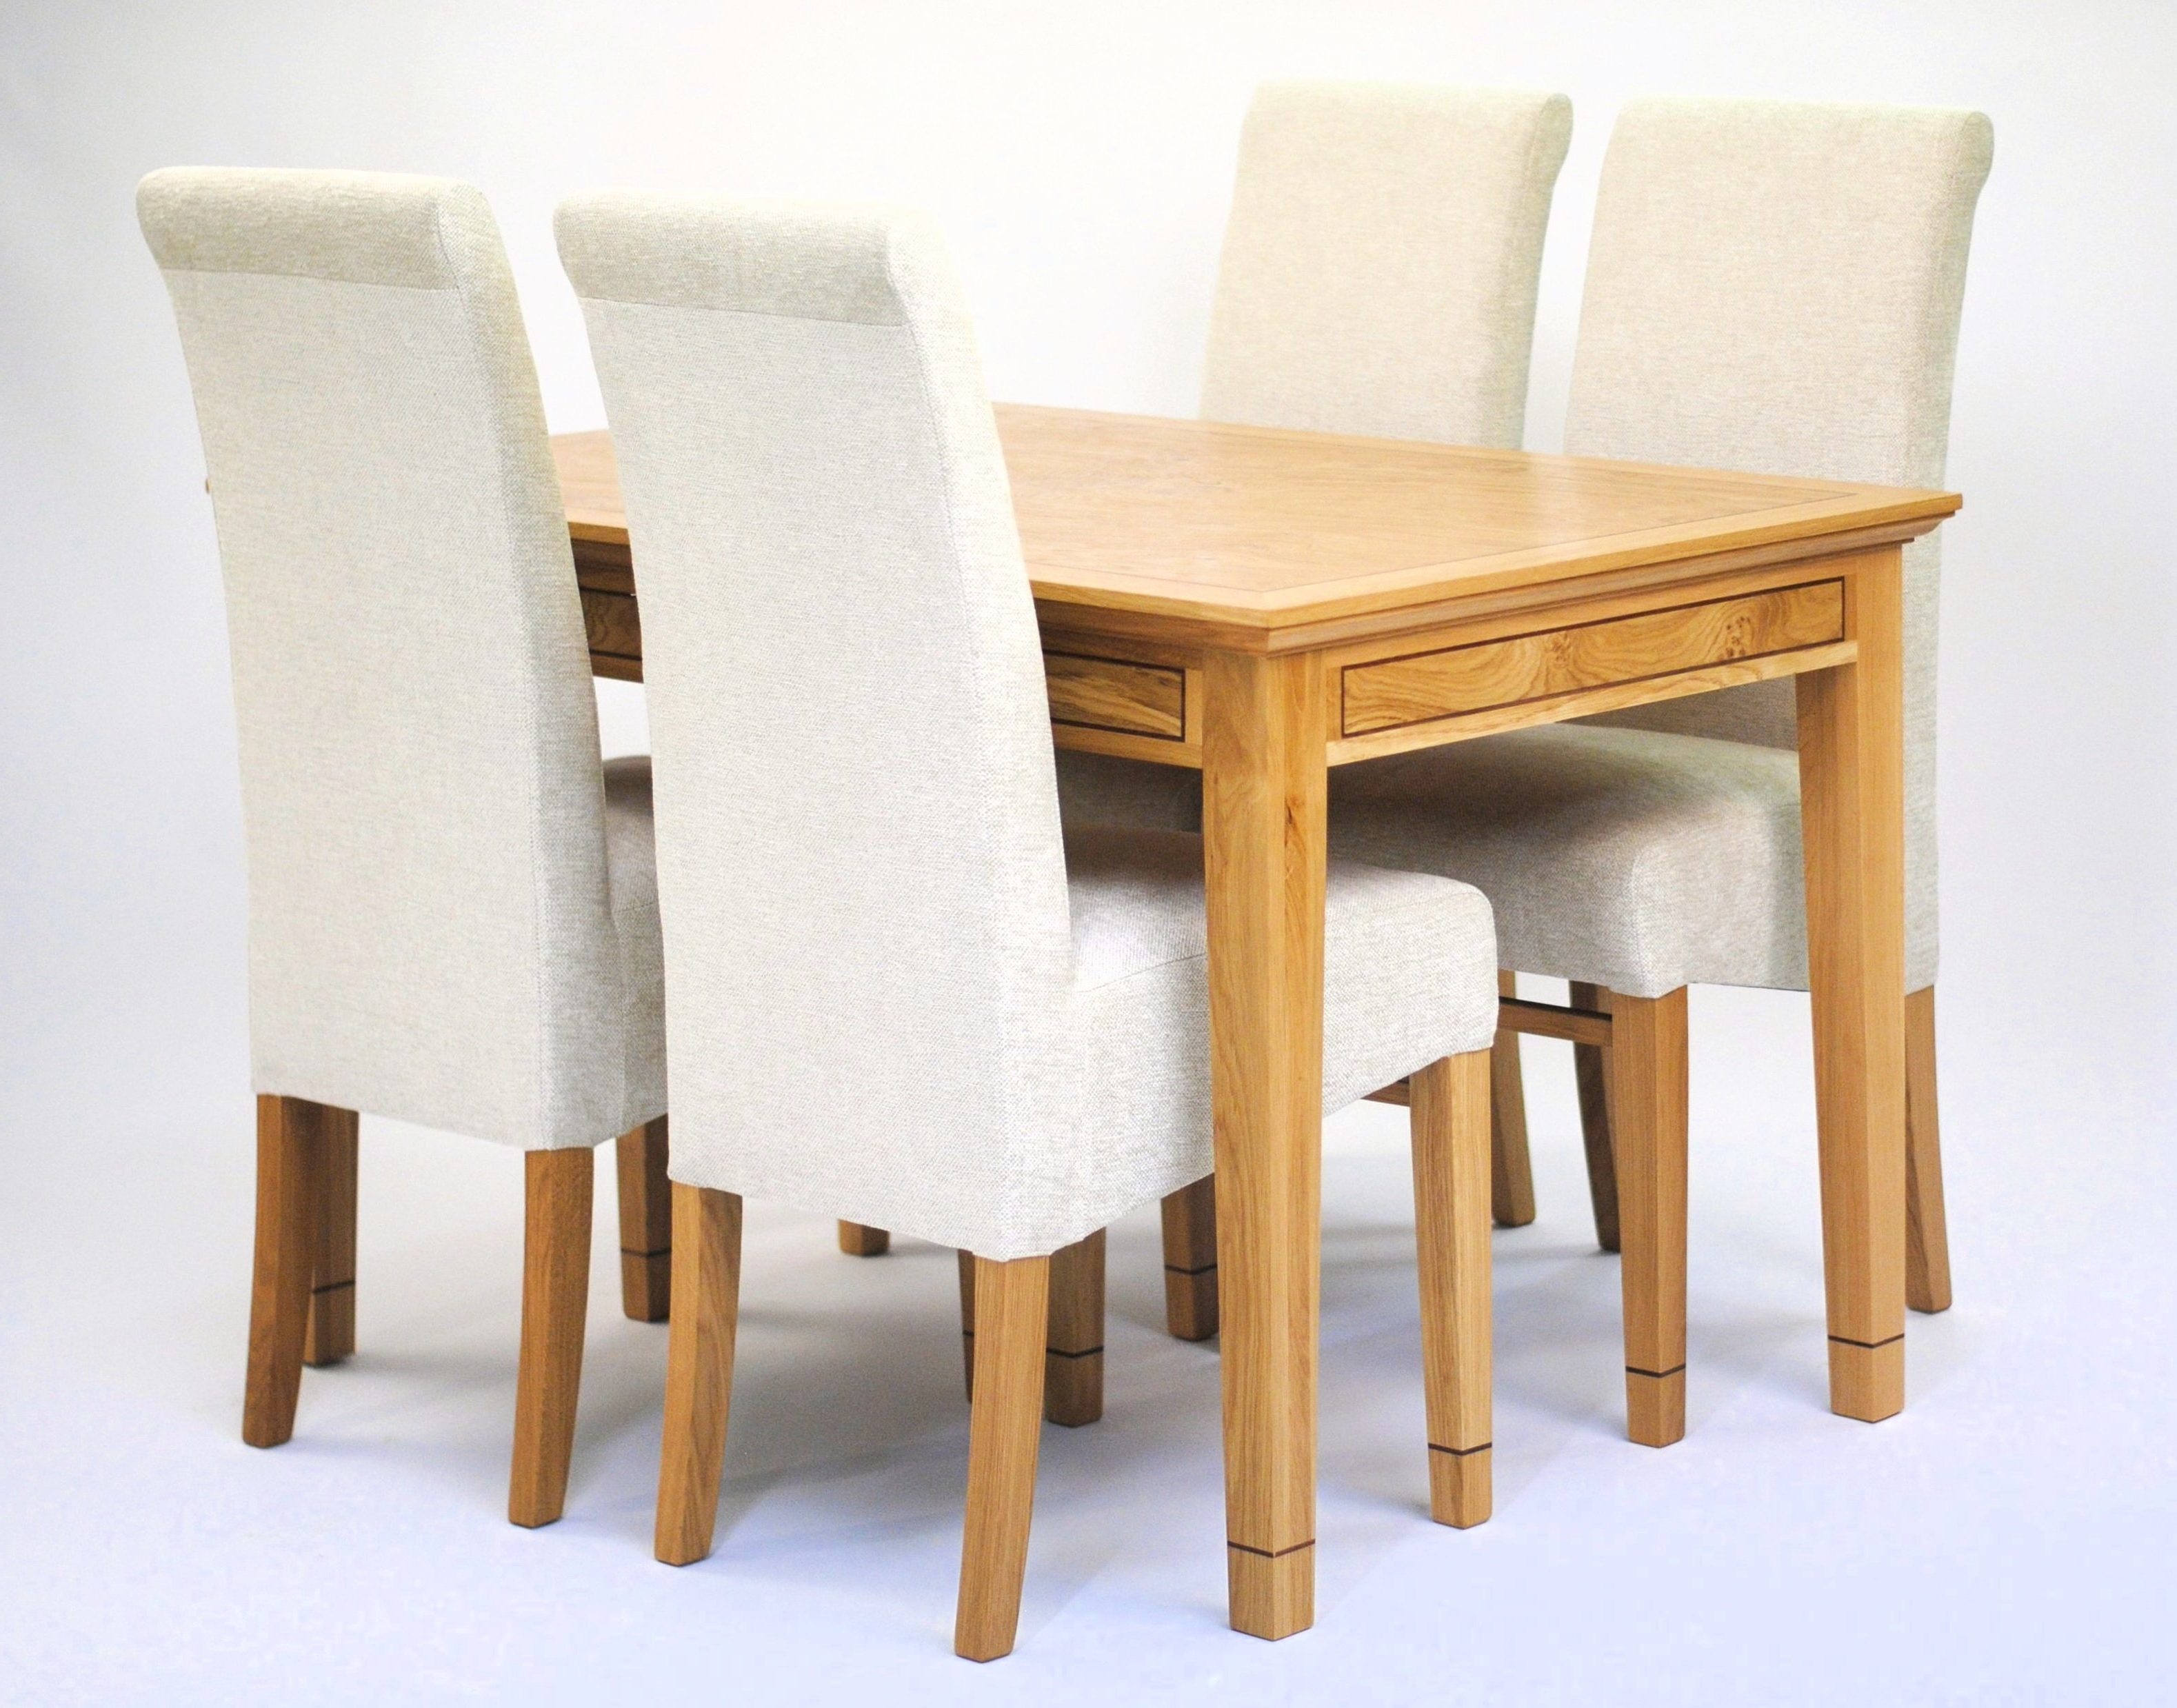 Small Dining Tables And Chairs With Well Known Dining Room Package Deal – Tanner Furniture Designs (View 17 of 25)